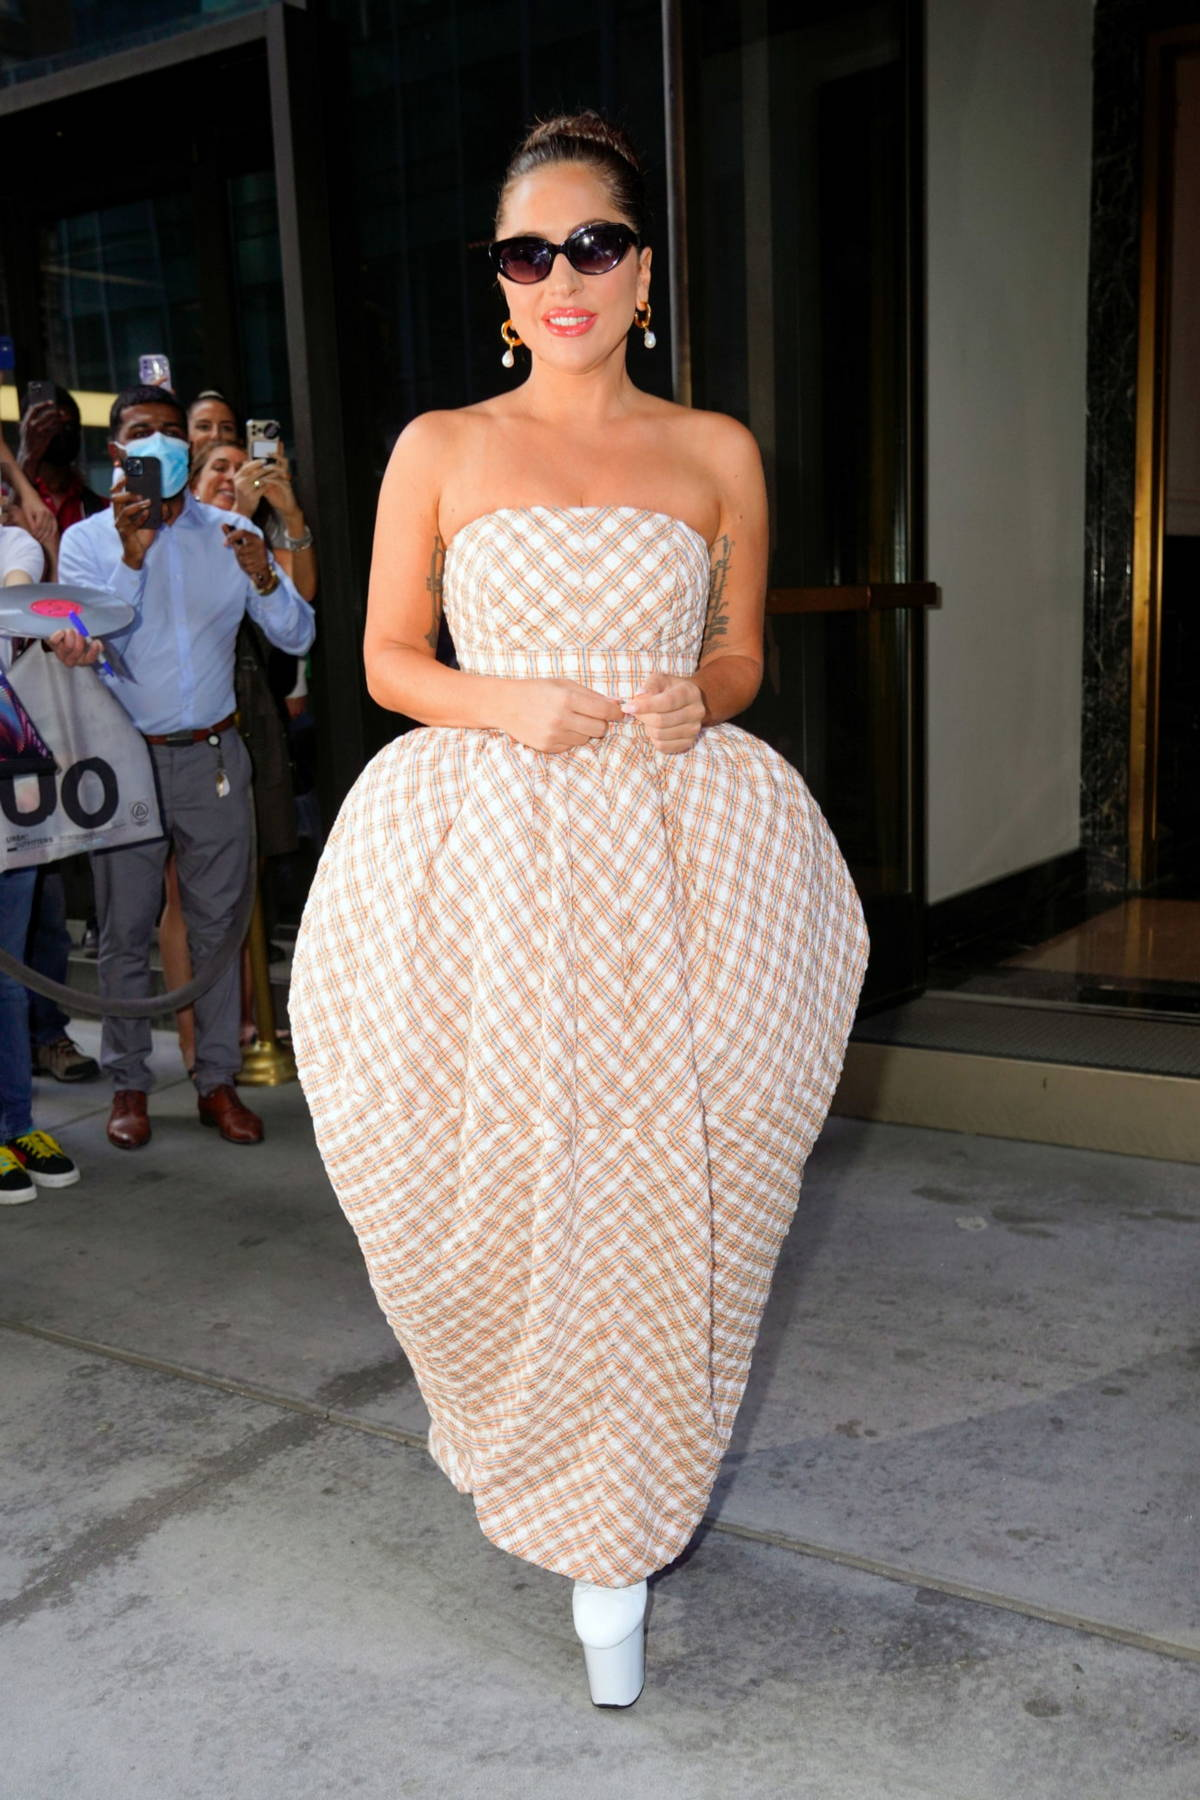 Lady Gaga stands out in a stylish puffy dress as she leaves her hotel and heads to Radio City Music Hall in New York City